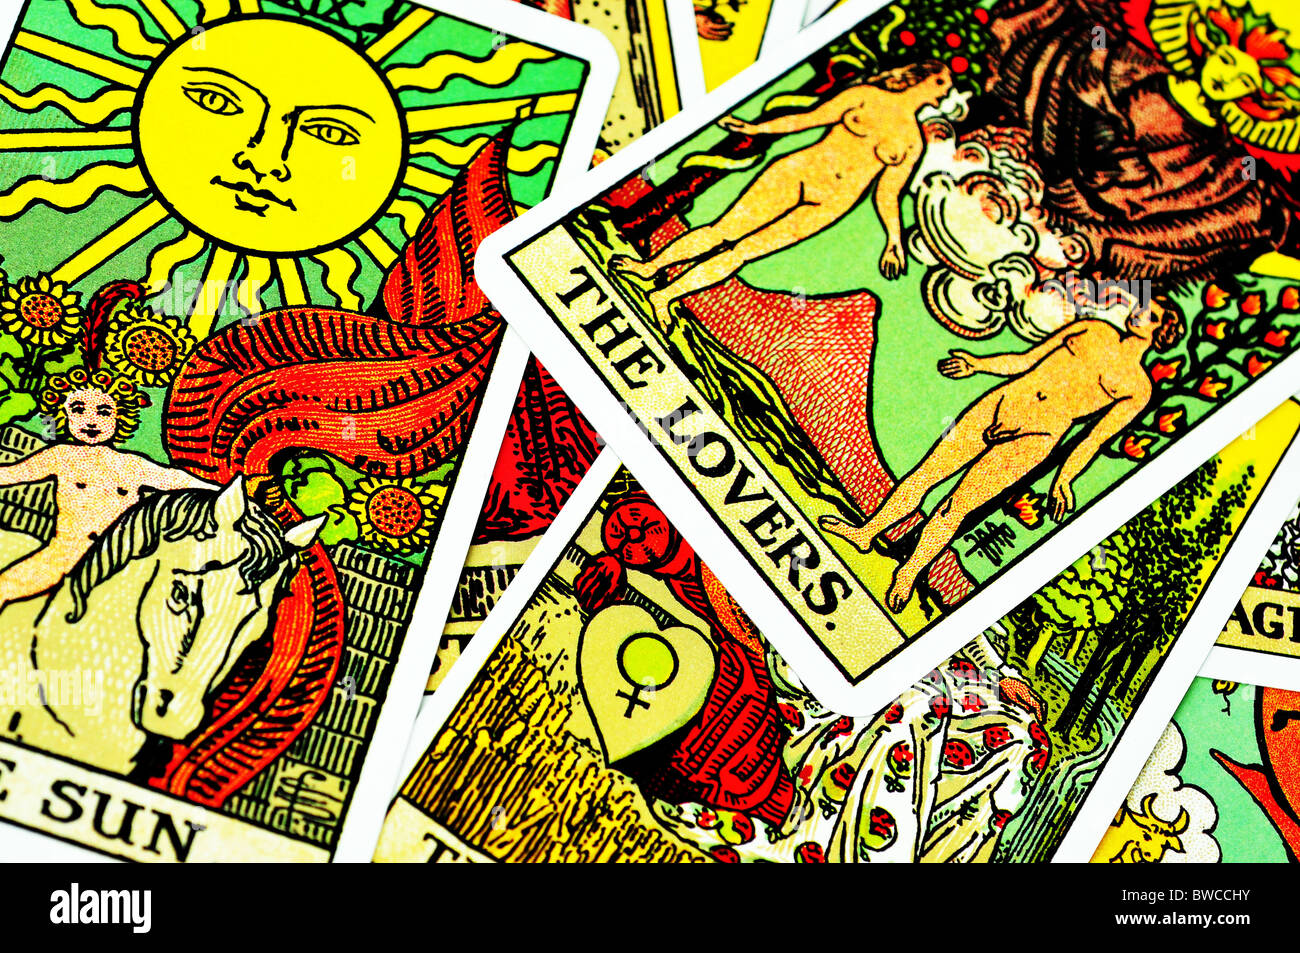 Fortune telling Tarot cards - Stock Image